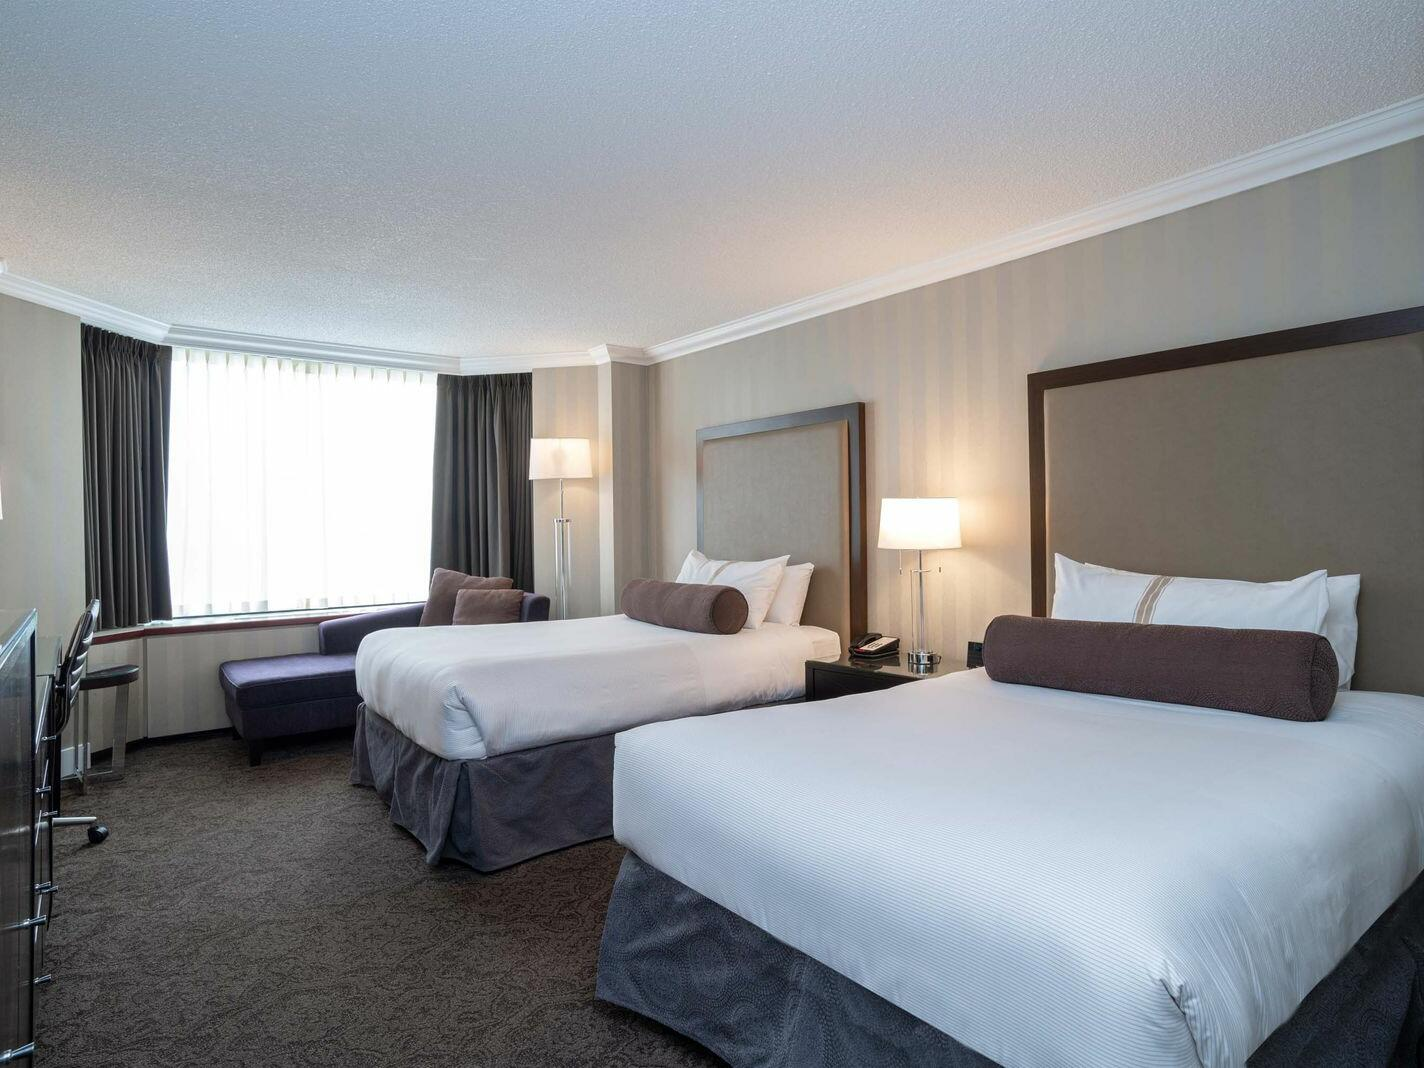 Deluxe Room - 2 Double Beds The Sutton Place Hotel Edmonton